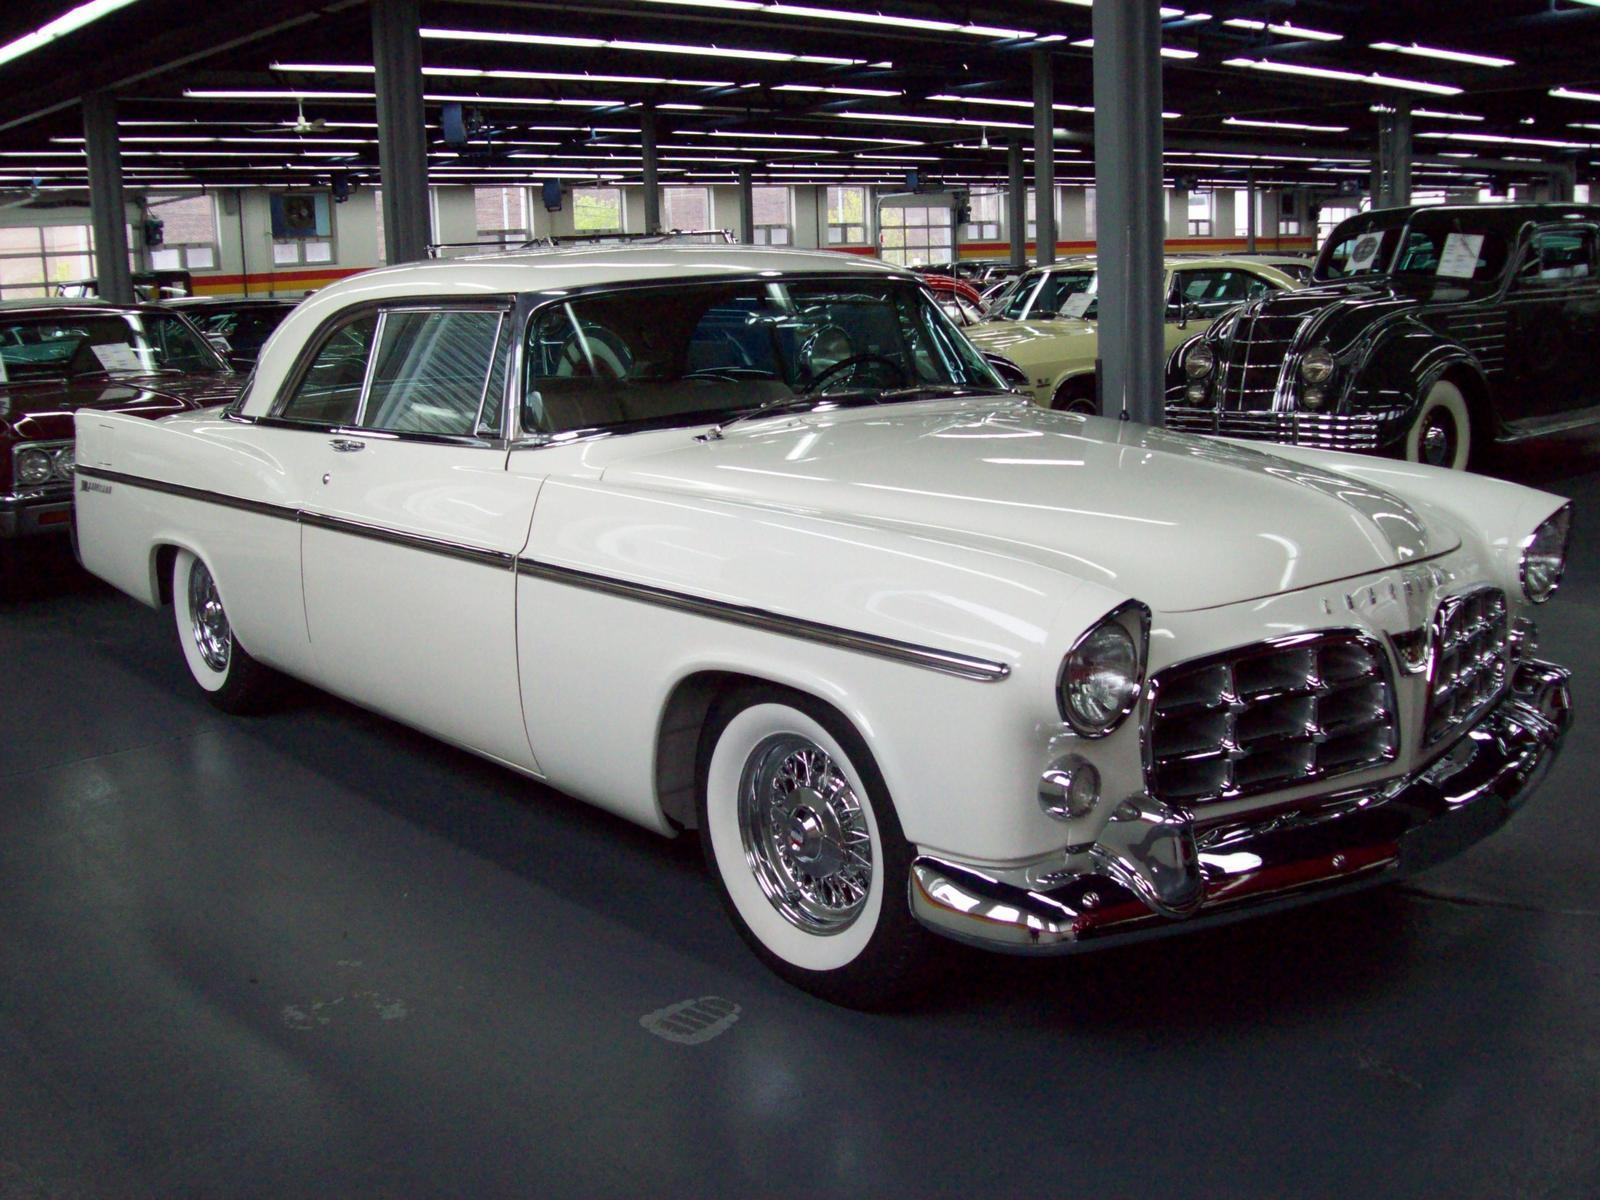 Used 1956 Chrysler 300B HEMI for sale in SaintLonard  John